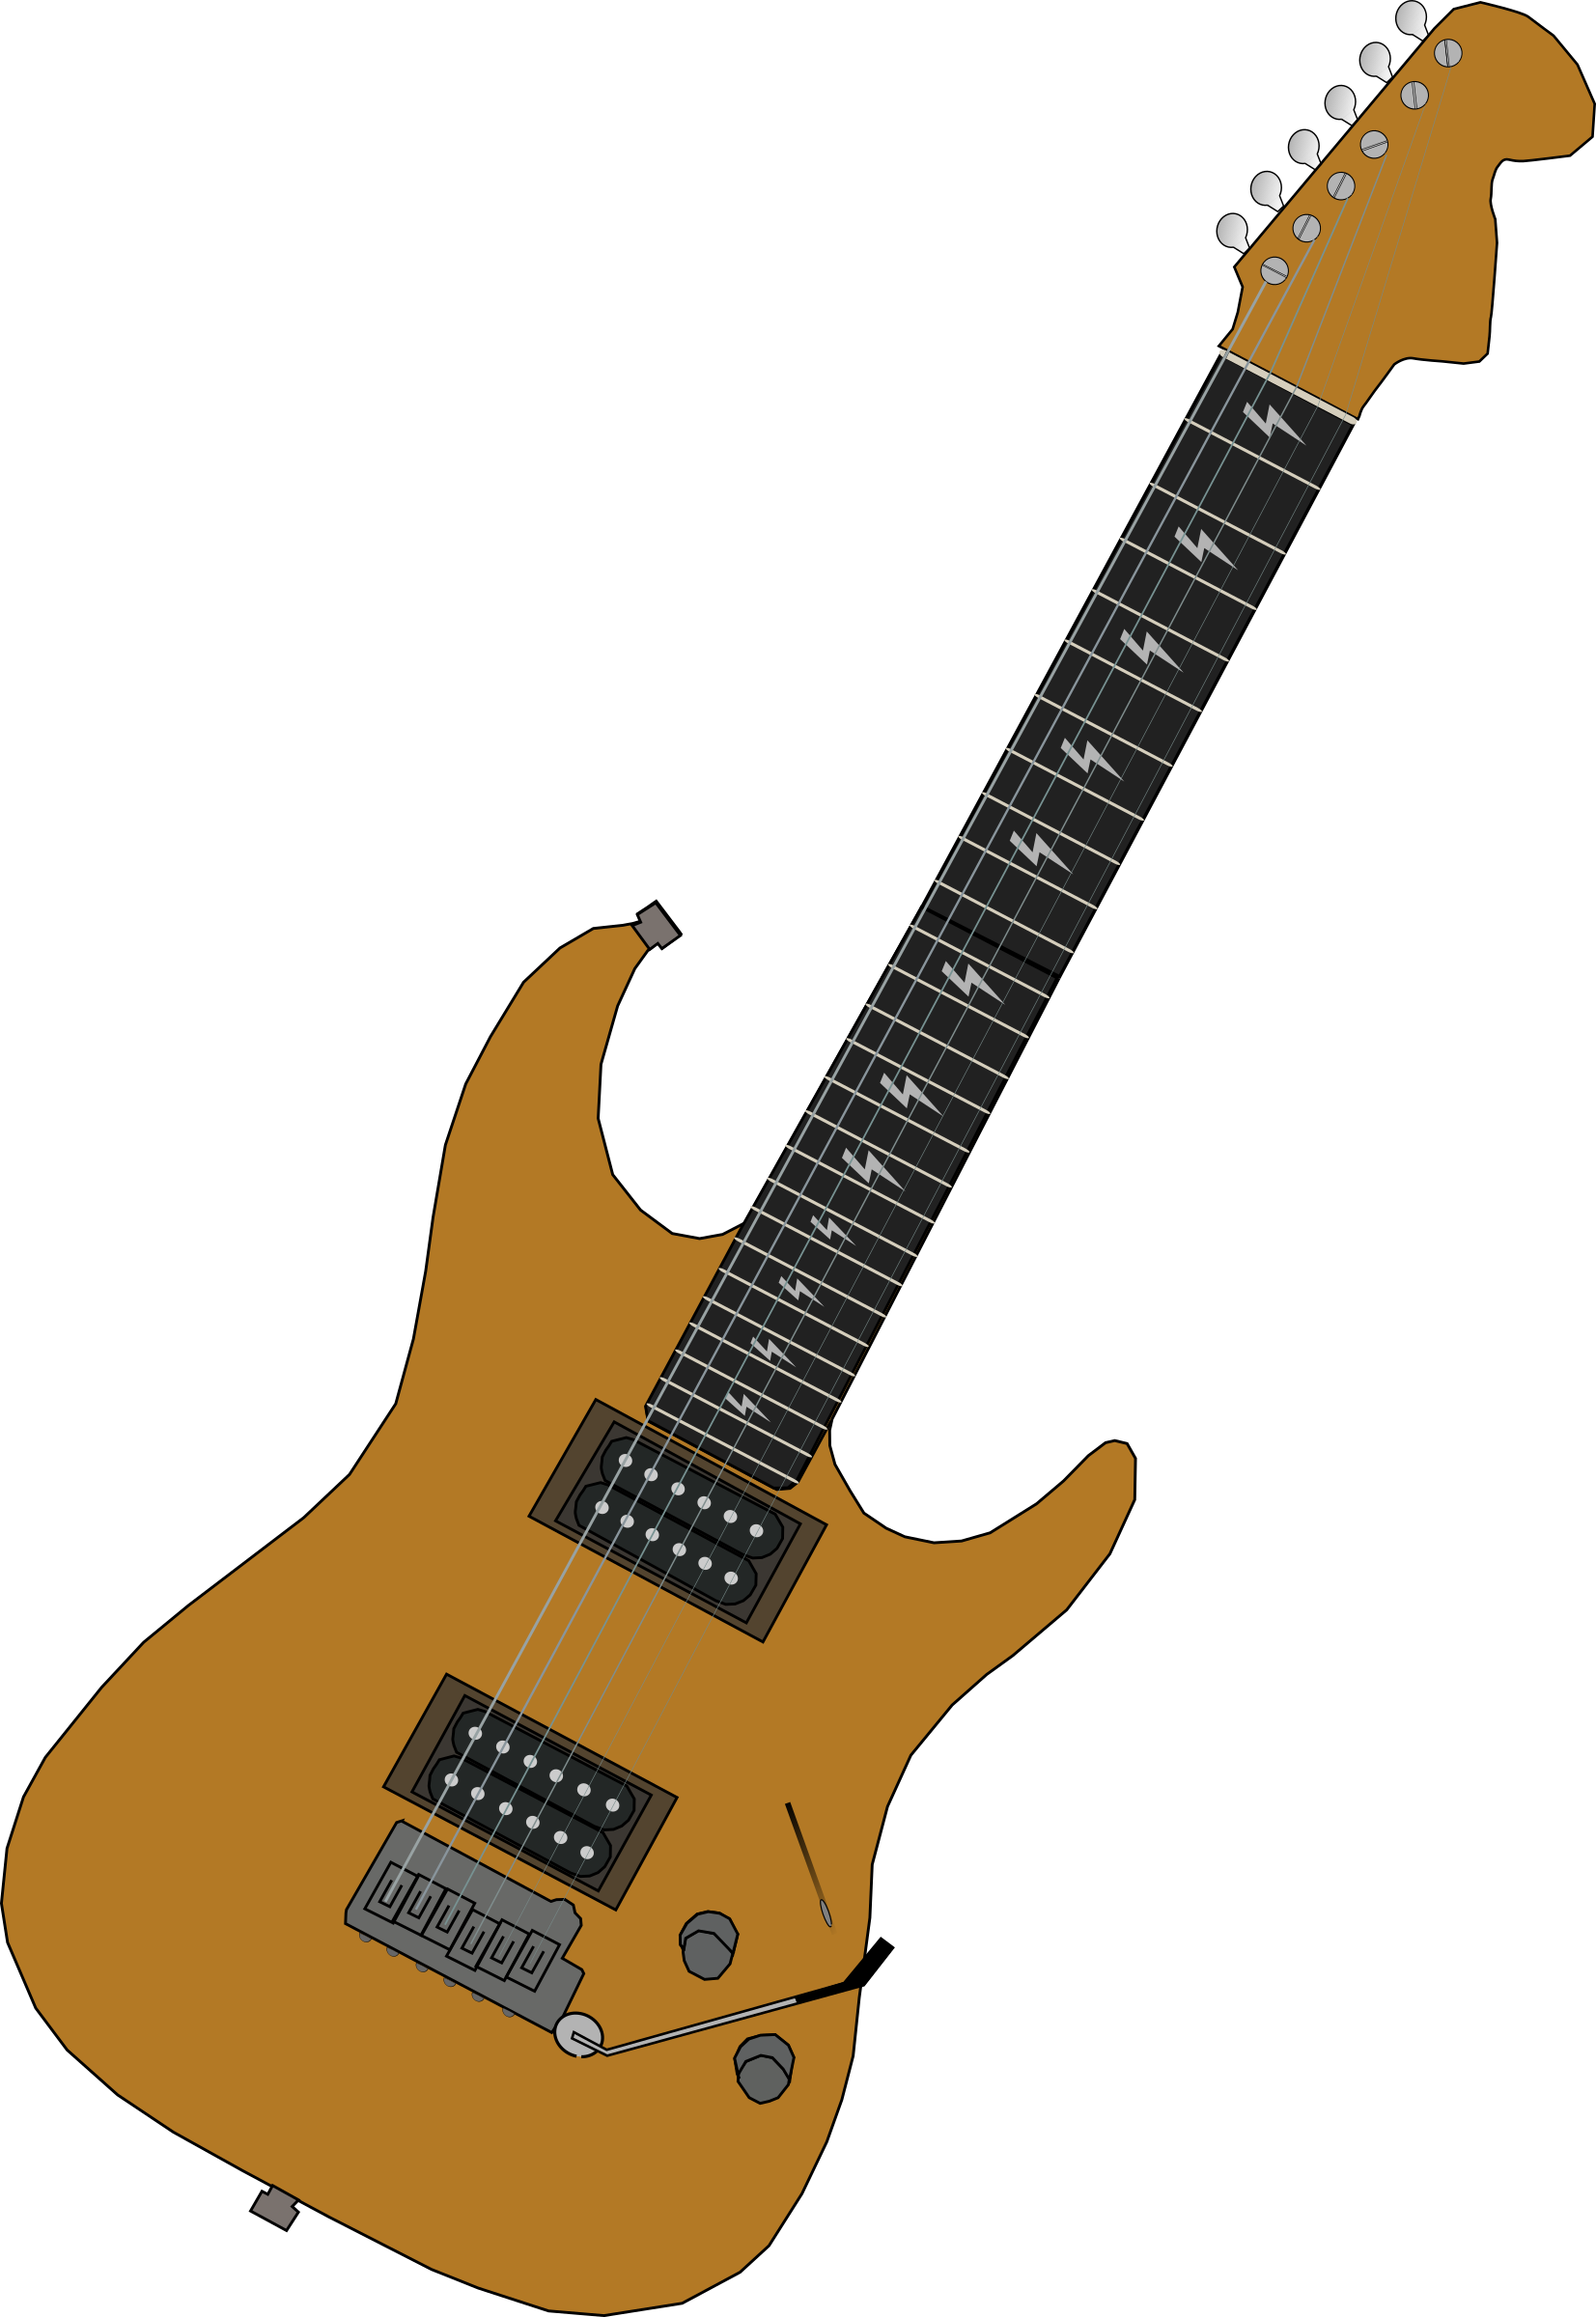 Guitar by Machovka